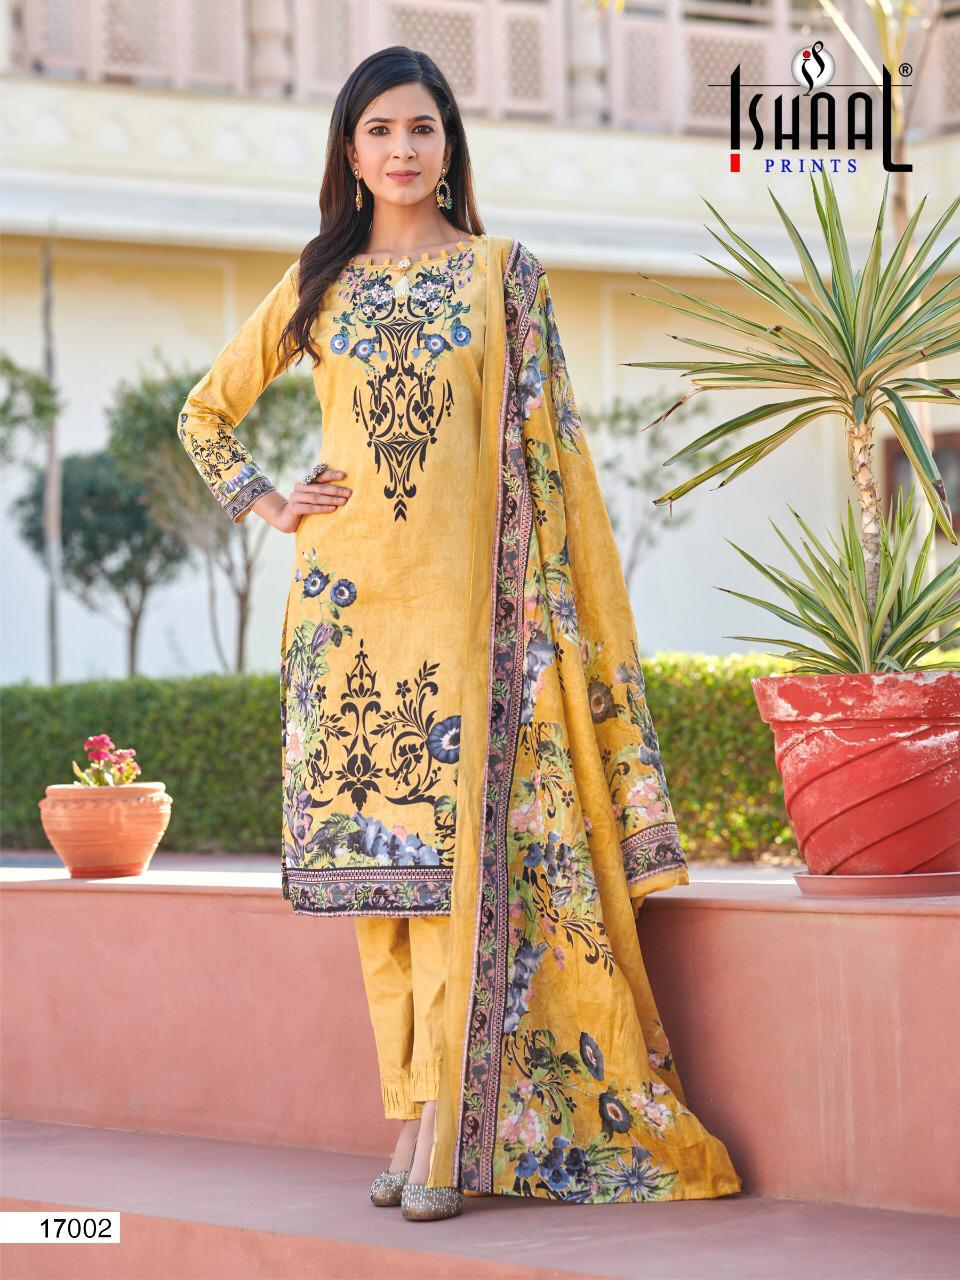 Ishaal Gulmohar 17 Pure Lawn collection 12